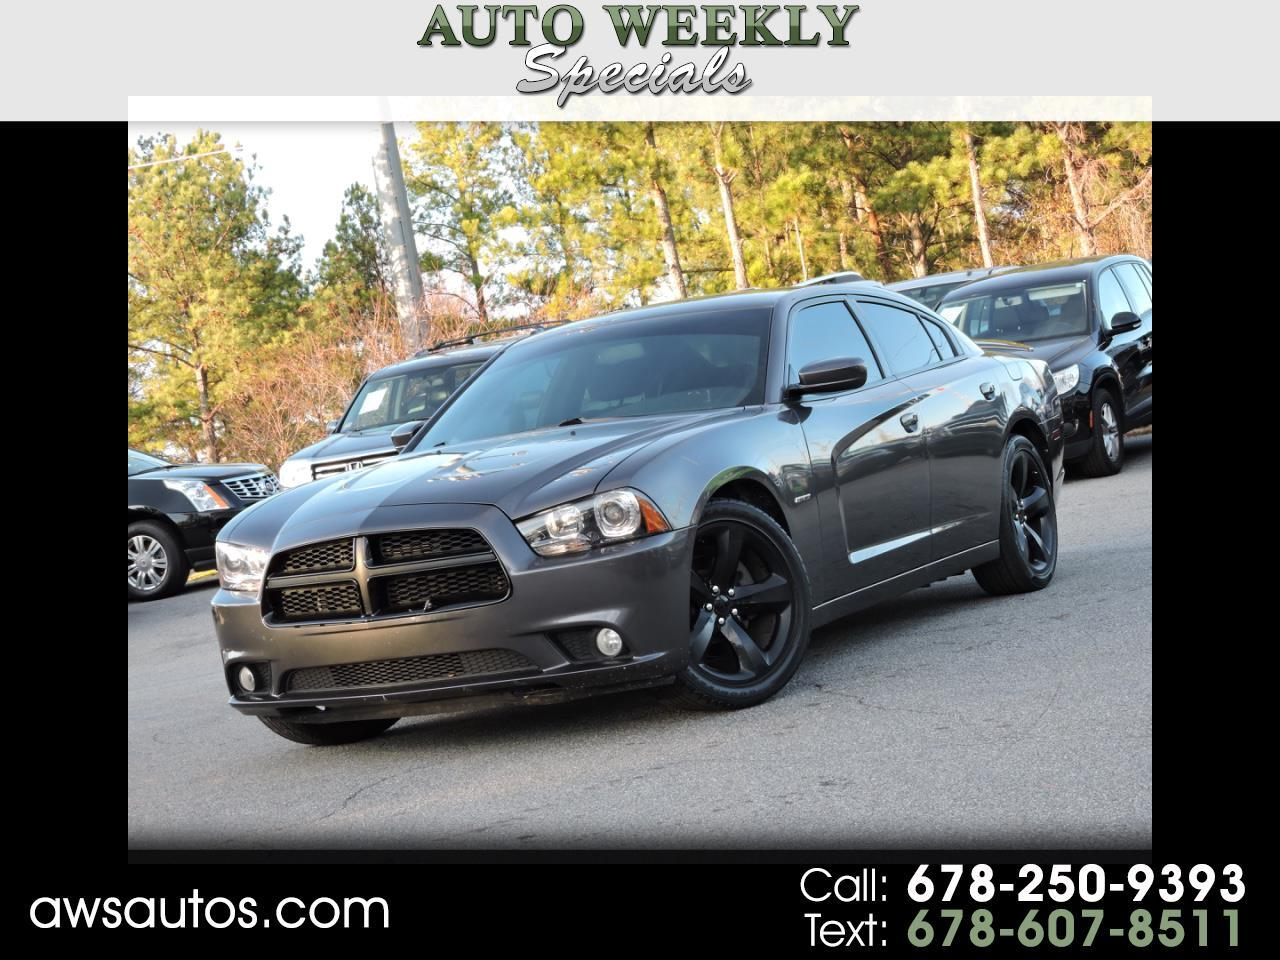 2014 Dodge Charger Rt For Sale >> Used 2014 Dodge Charger 4dr Sdn Rt Rwd For Sale In Marietta